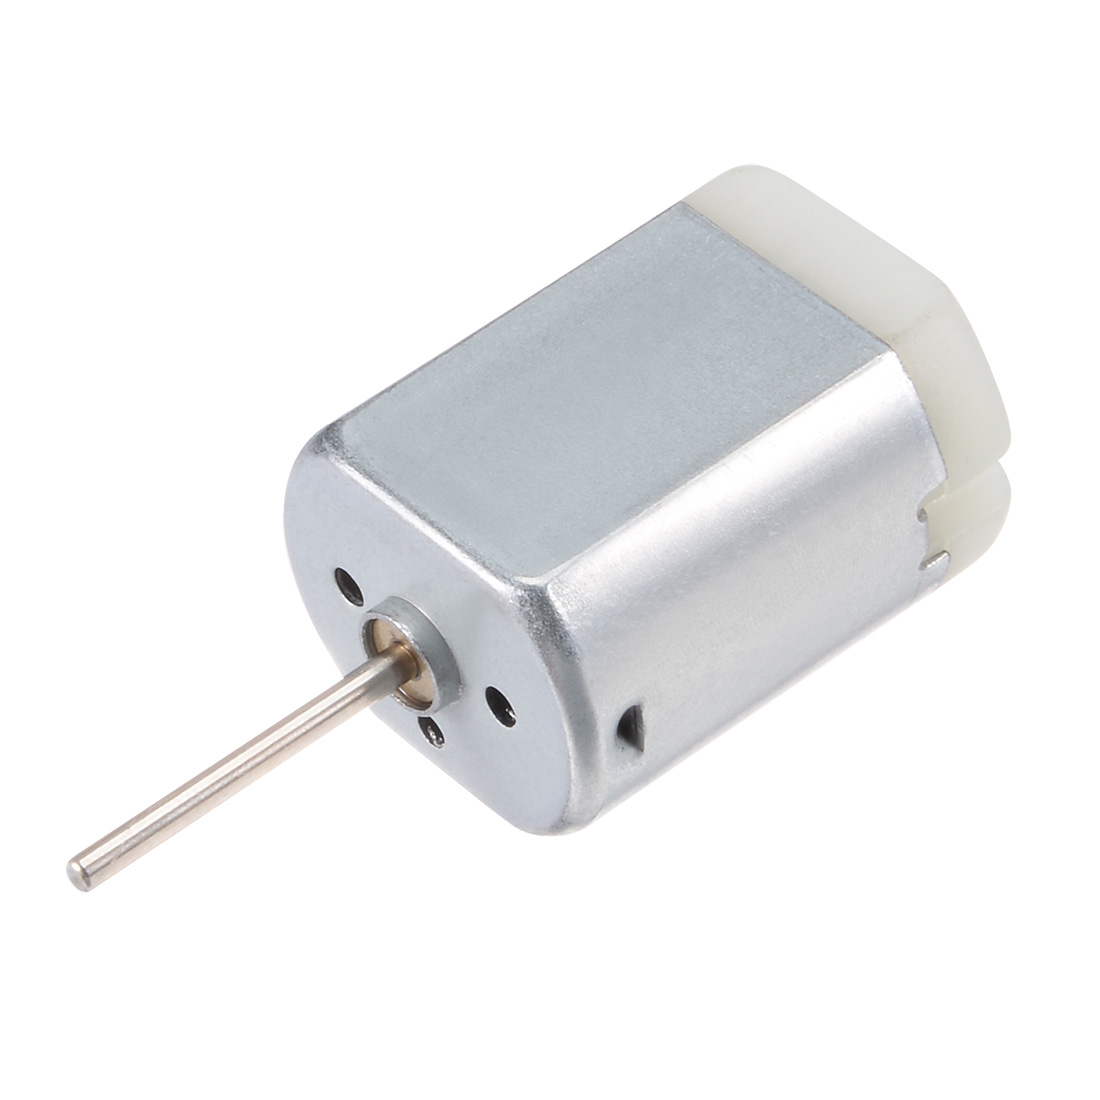 Small Motor DC 12V 13000RPM High Speed Motor for DIY Toy Cars Remote Control